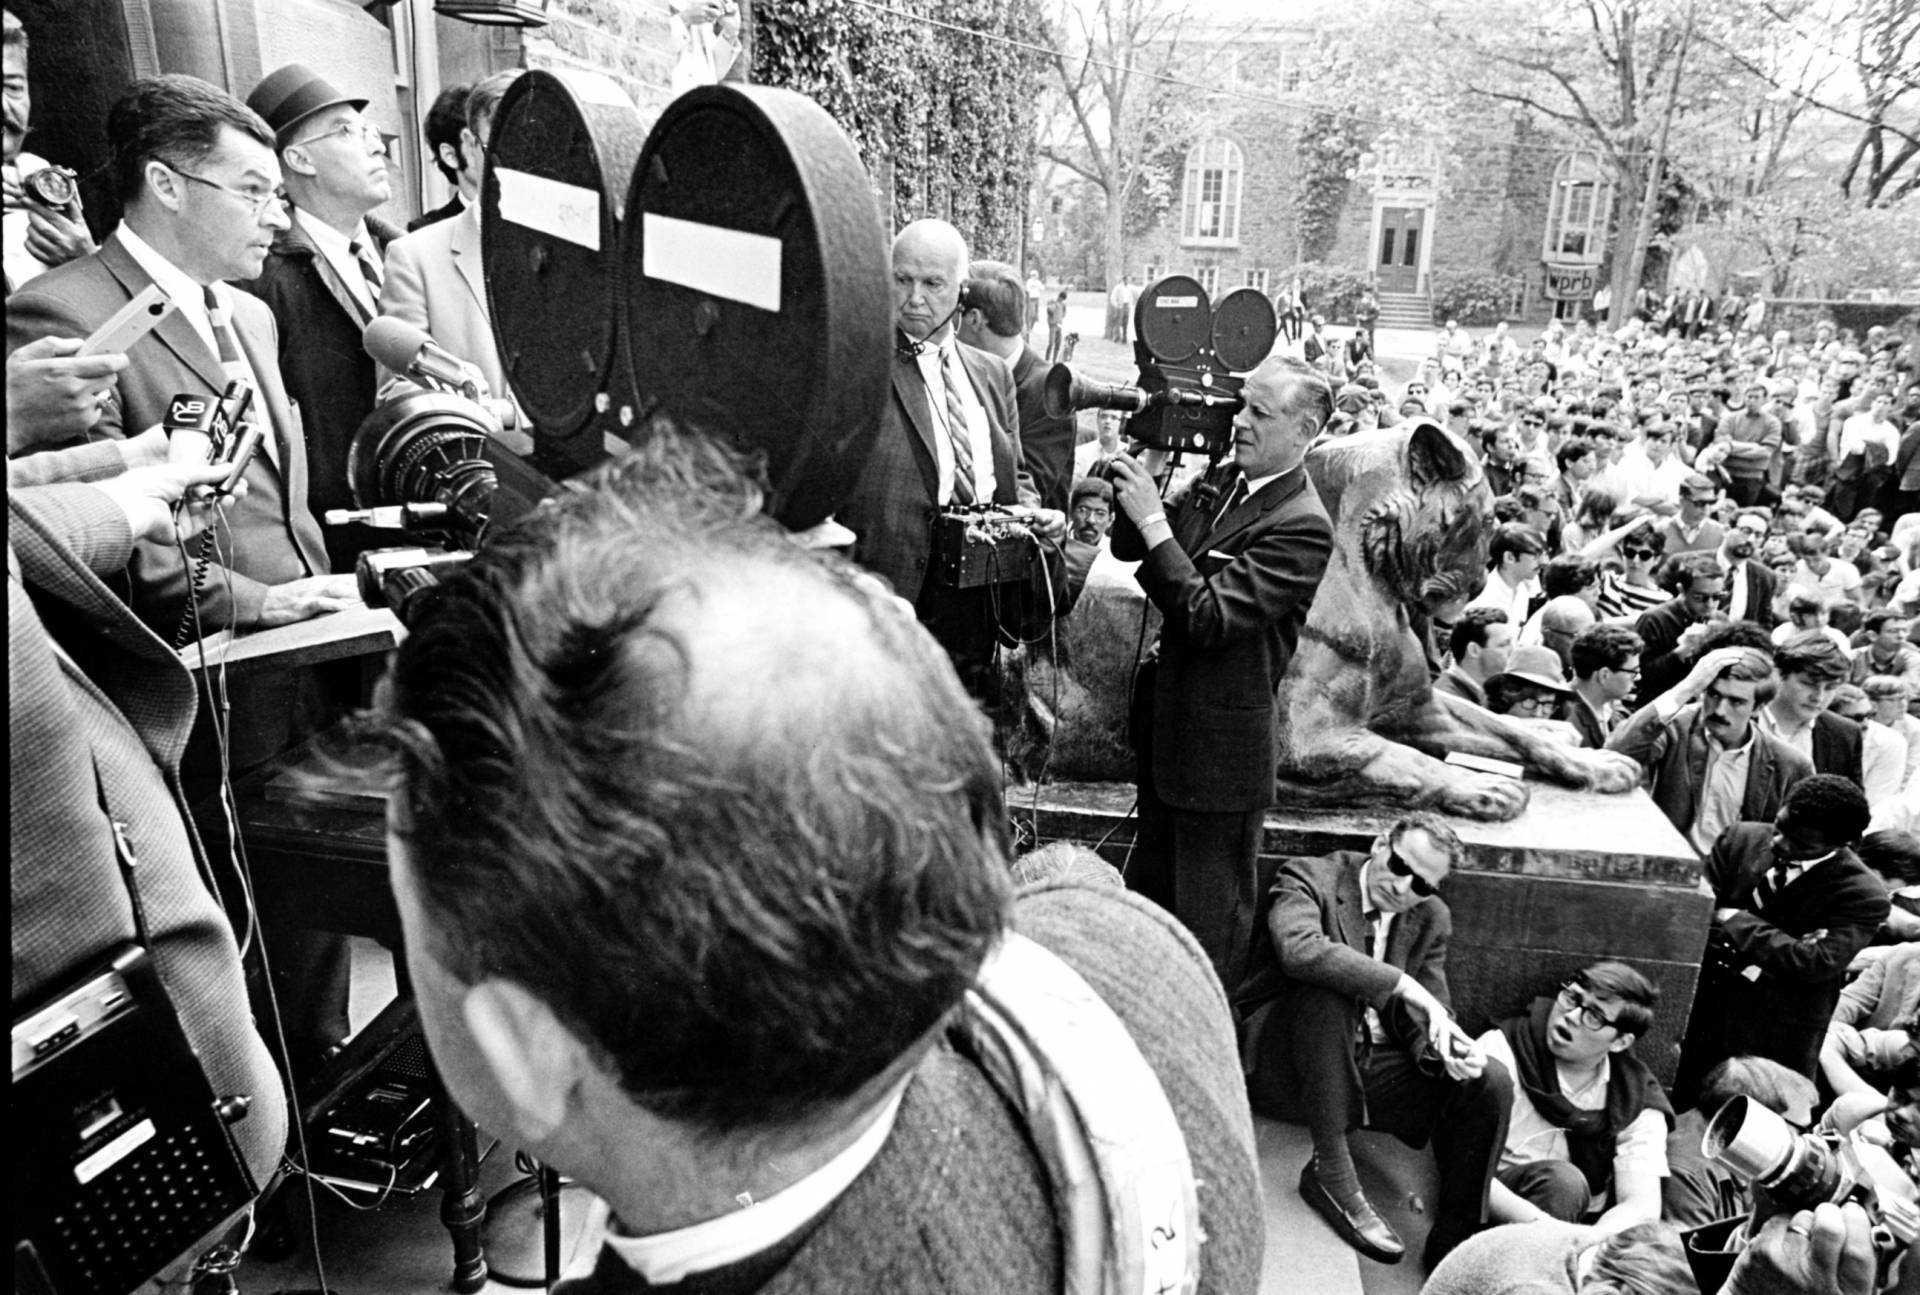 archival photo showing Robert F. Goheen addressing a crowd protesting the Vietnam War